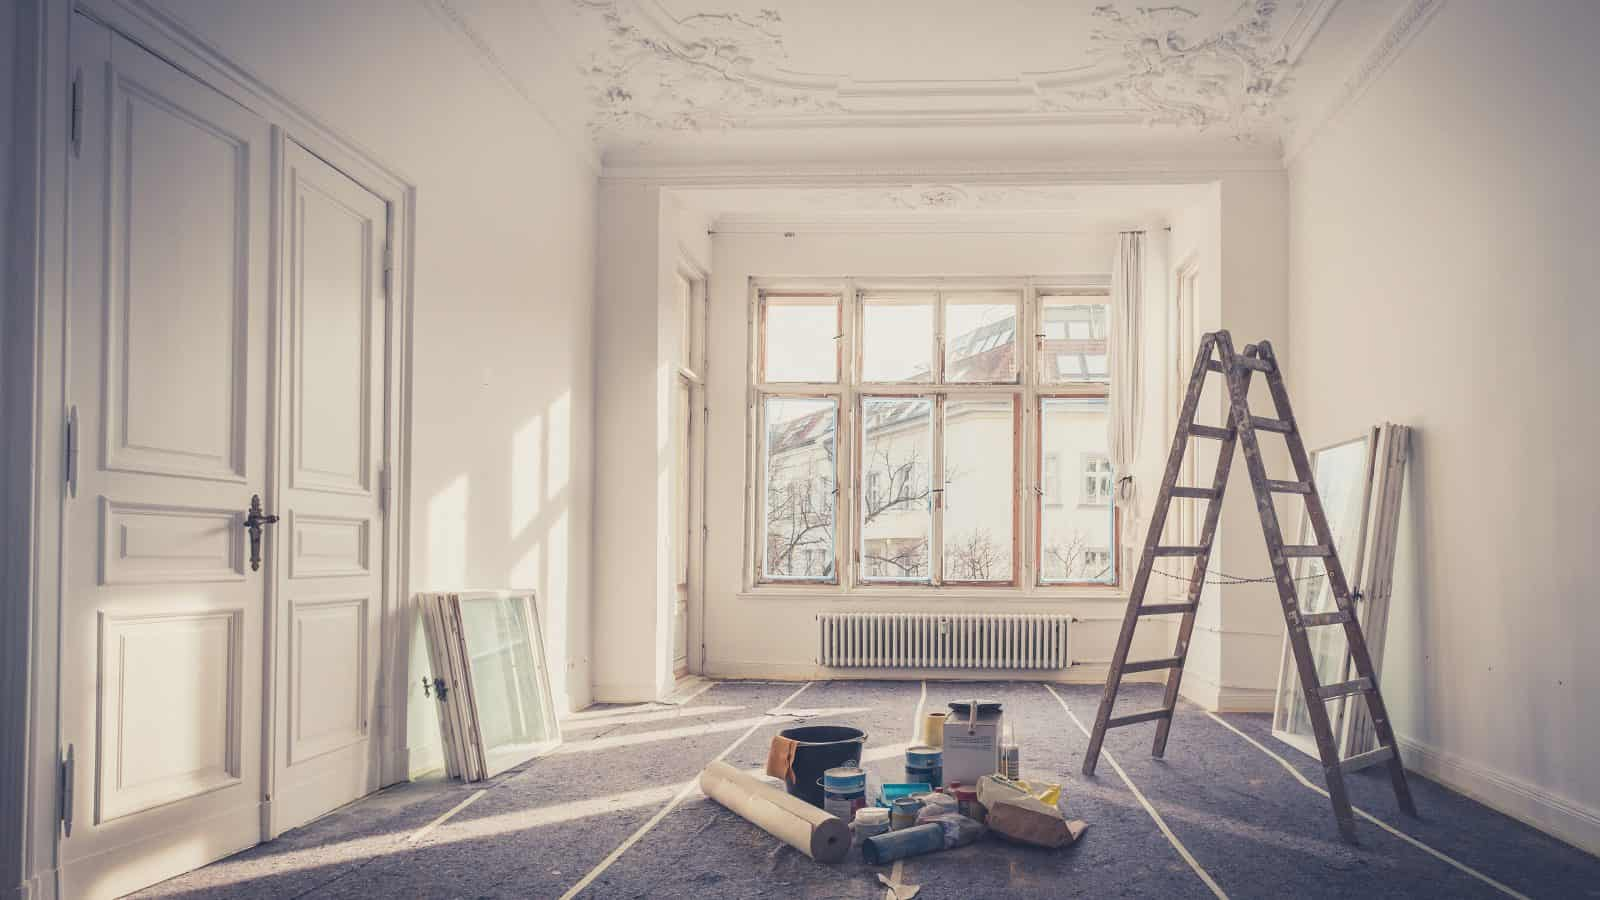 House Interior Remodel